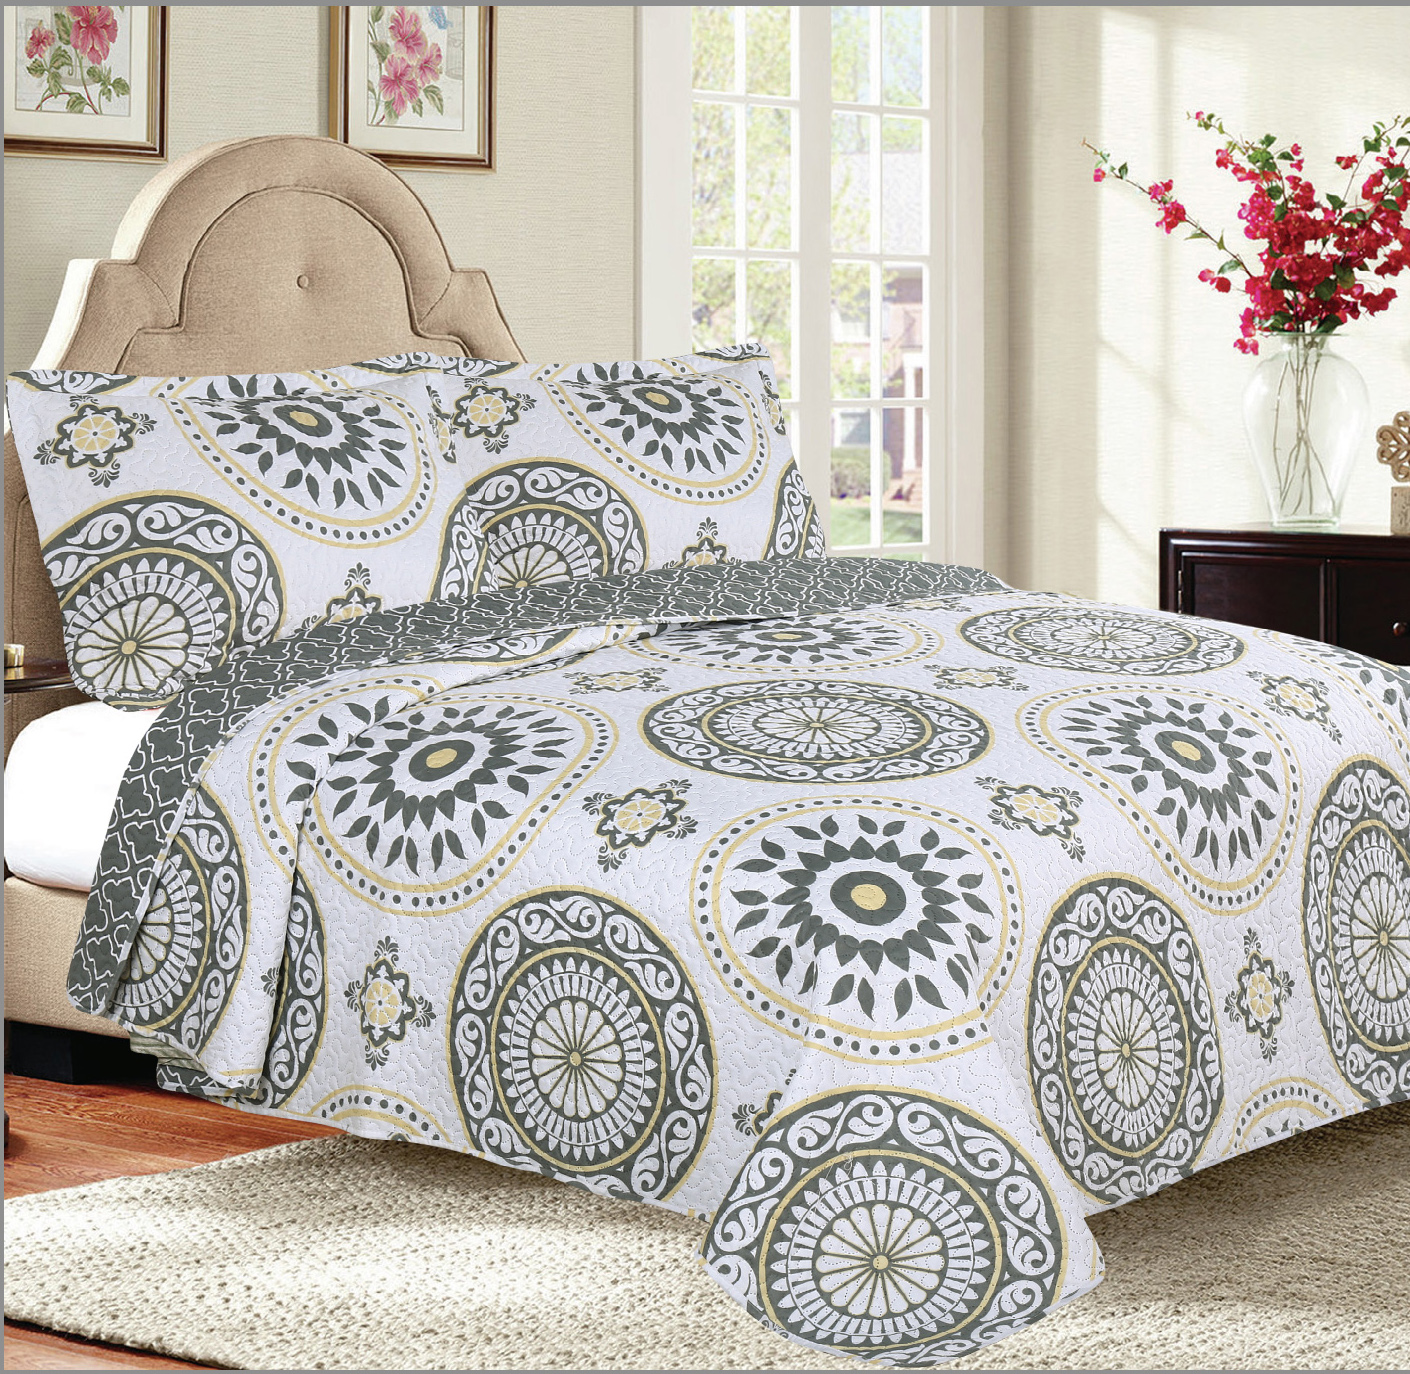 3-Piece Modern Trellis Petals Reversible Bedspread Coverlet Quilt Set with Shams by Woven Trends